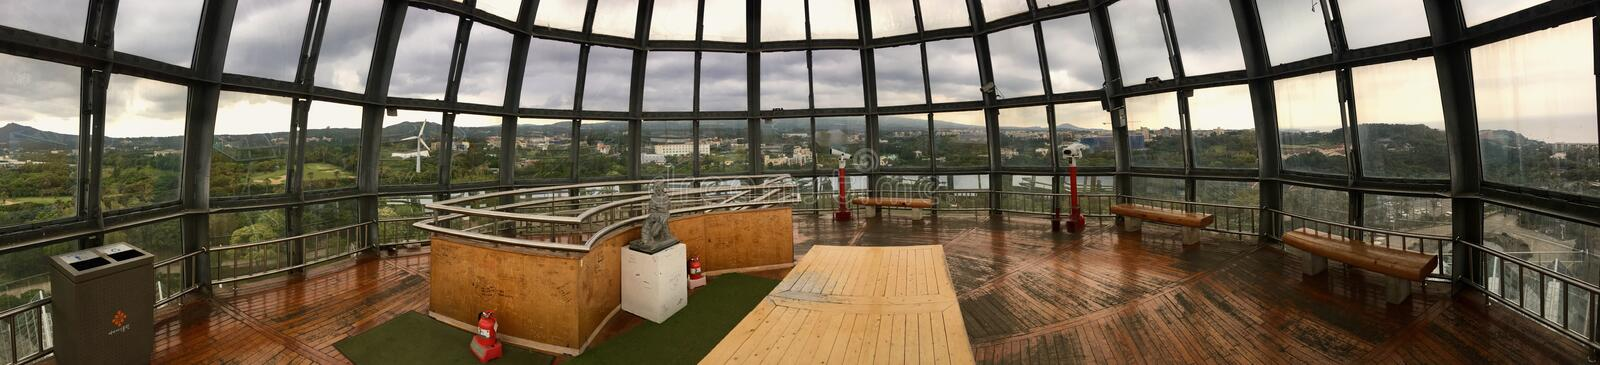 Full 360 degrees top viewing deck room with full glass panel allowing maximum visibility of Jeju at Yeomiji Botanical Garden royalty free stock image